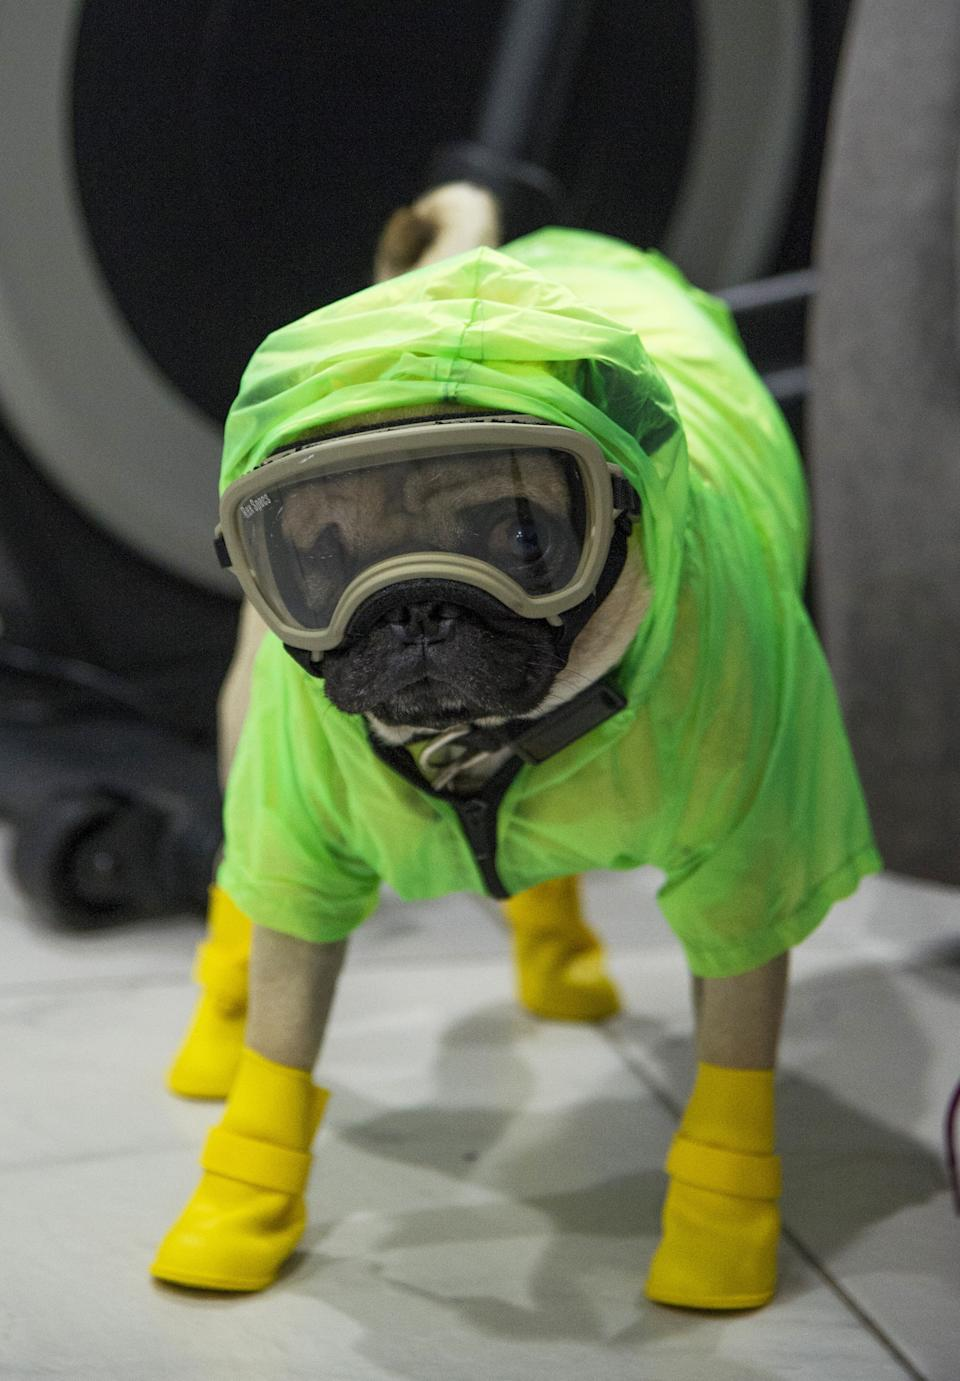 Harley, a three-year-old Pug puppy, wears protective equipment to prevent the spread of the new coronavirus, COVID-19, in Mexico City, on May 13, 2020. Harley gives support and emotional assistance to doctors and nurses, who have already spent at least 50 days in the first line treating patients with COVID-19. (Photo by CLAUDIO CRUZ / AFP)